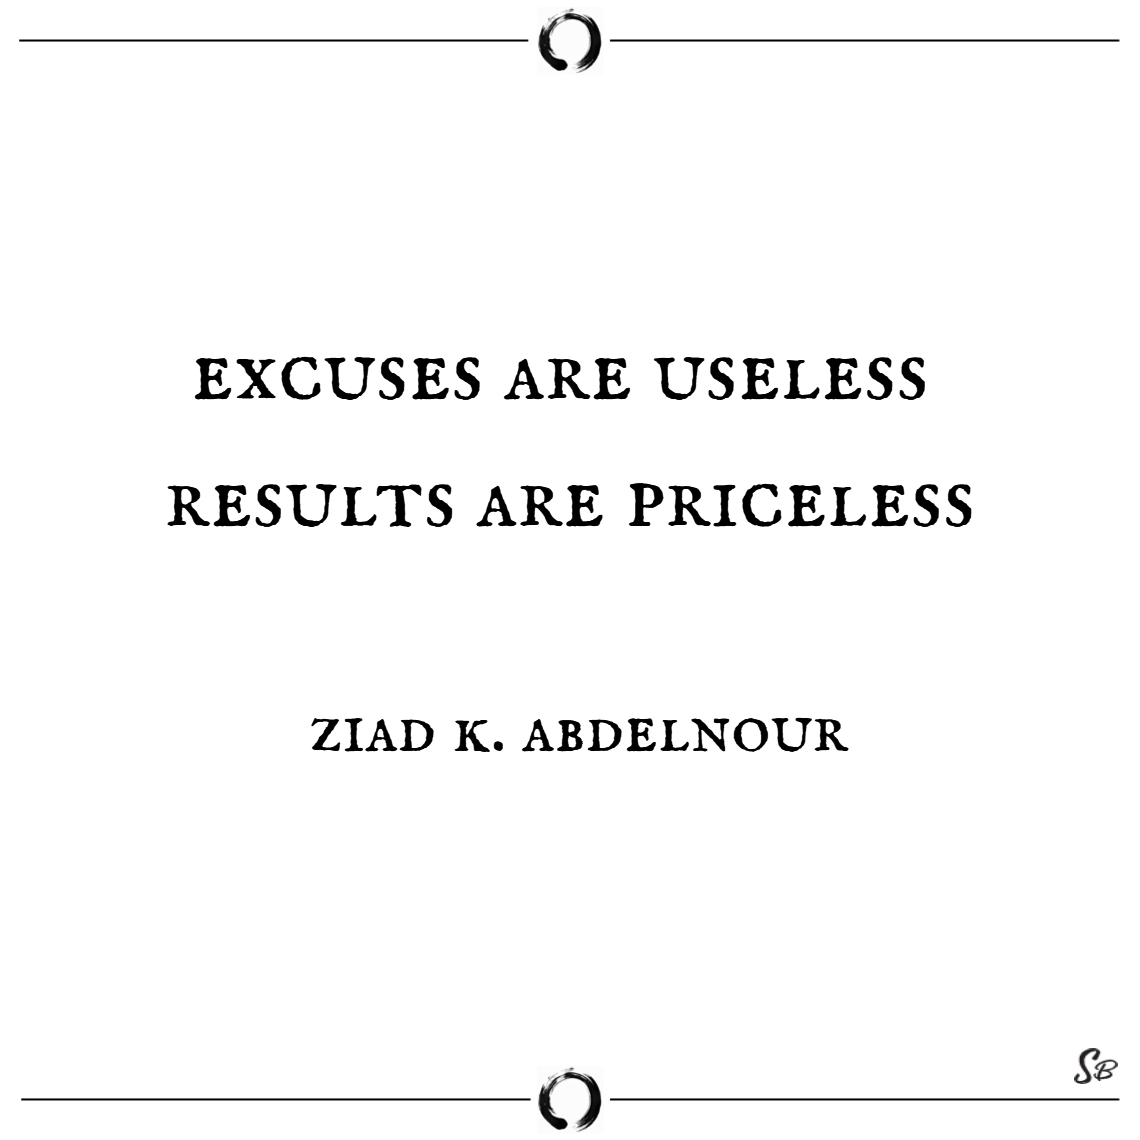 Excuses are useless. results are priceless. – ziad